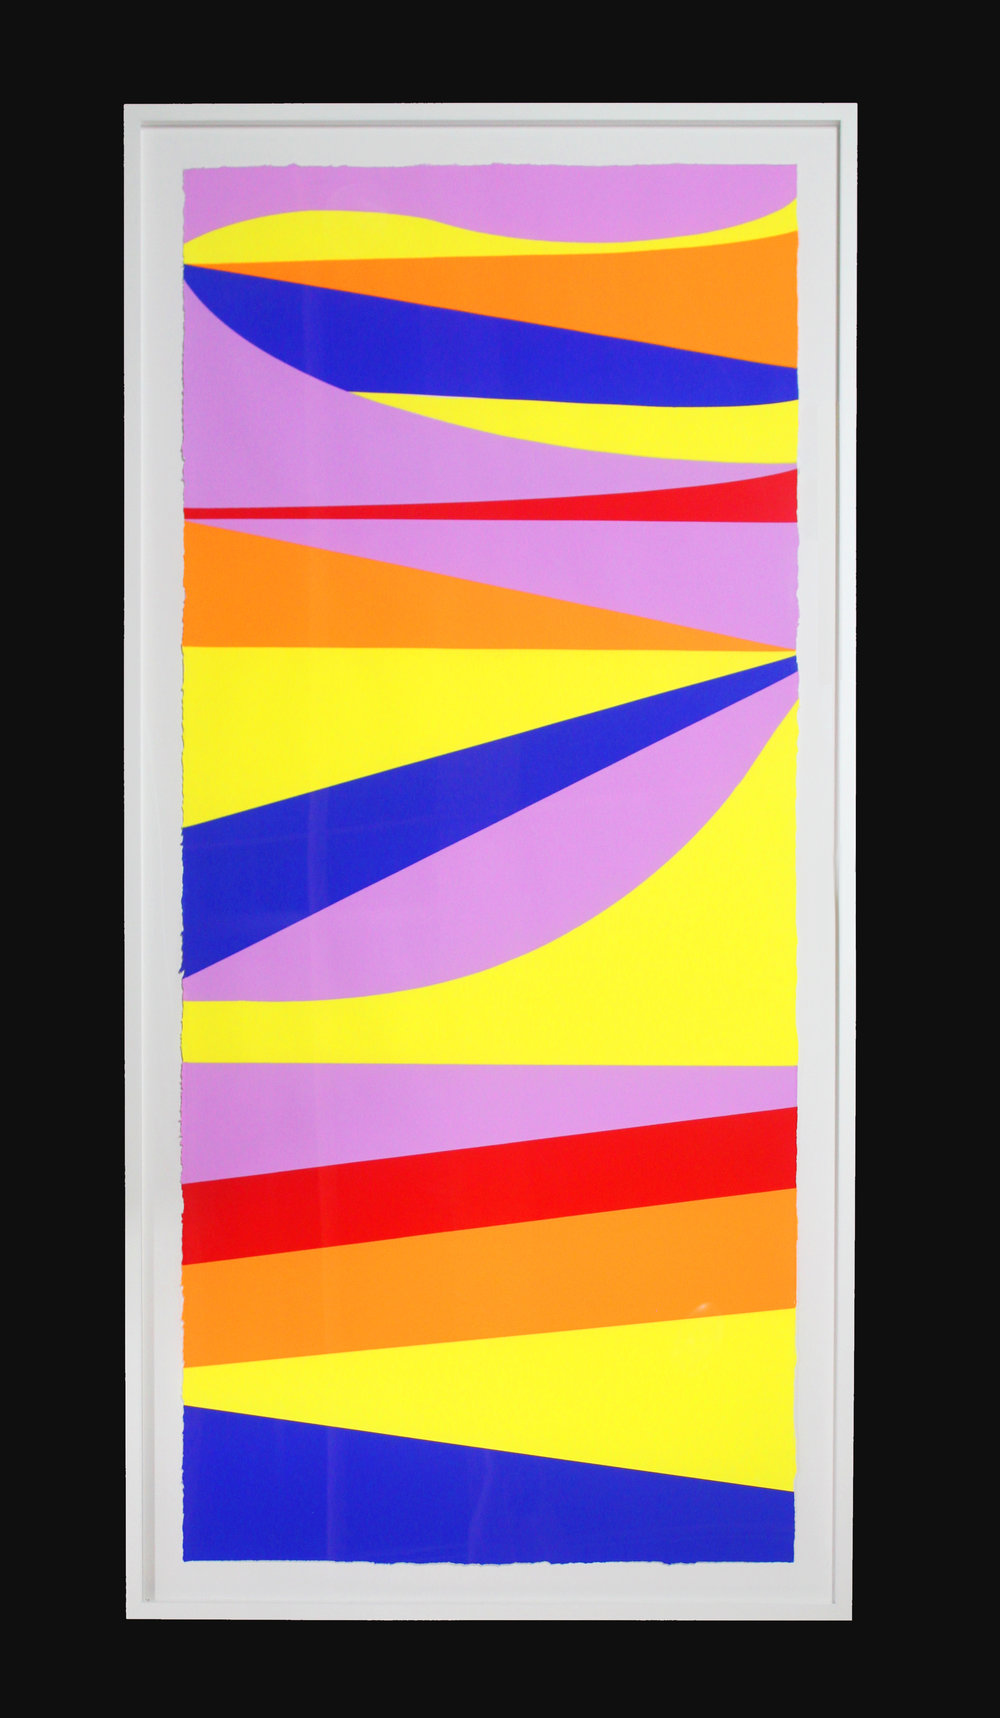 _Let it Slide_ 2.5 x 5.5 ft screenprint on paper 5 color mono print .jpg